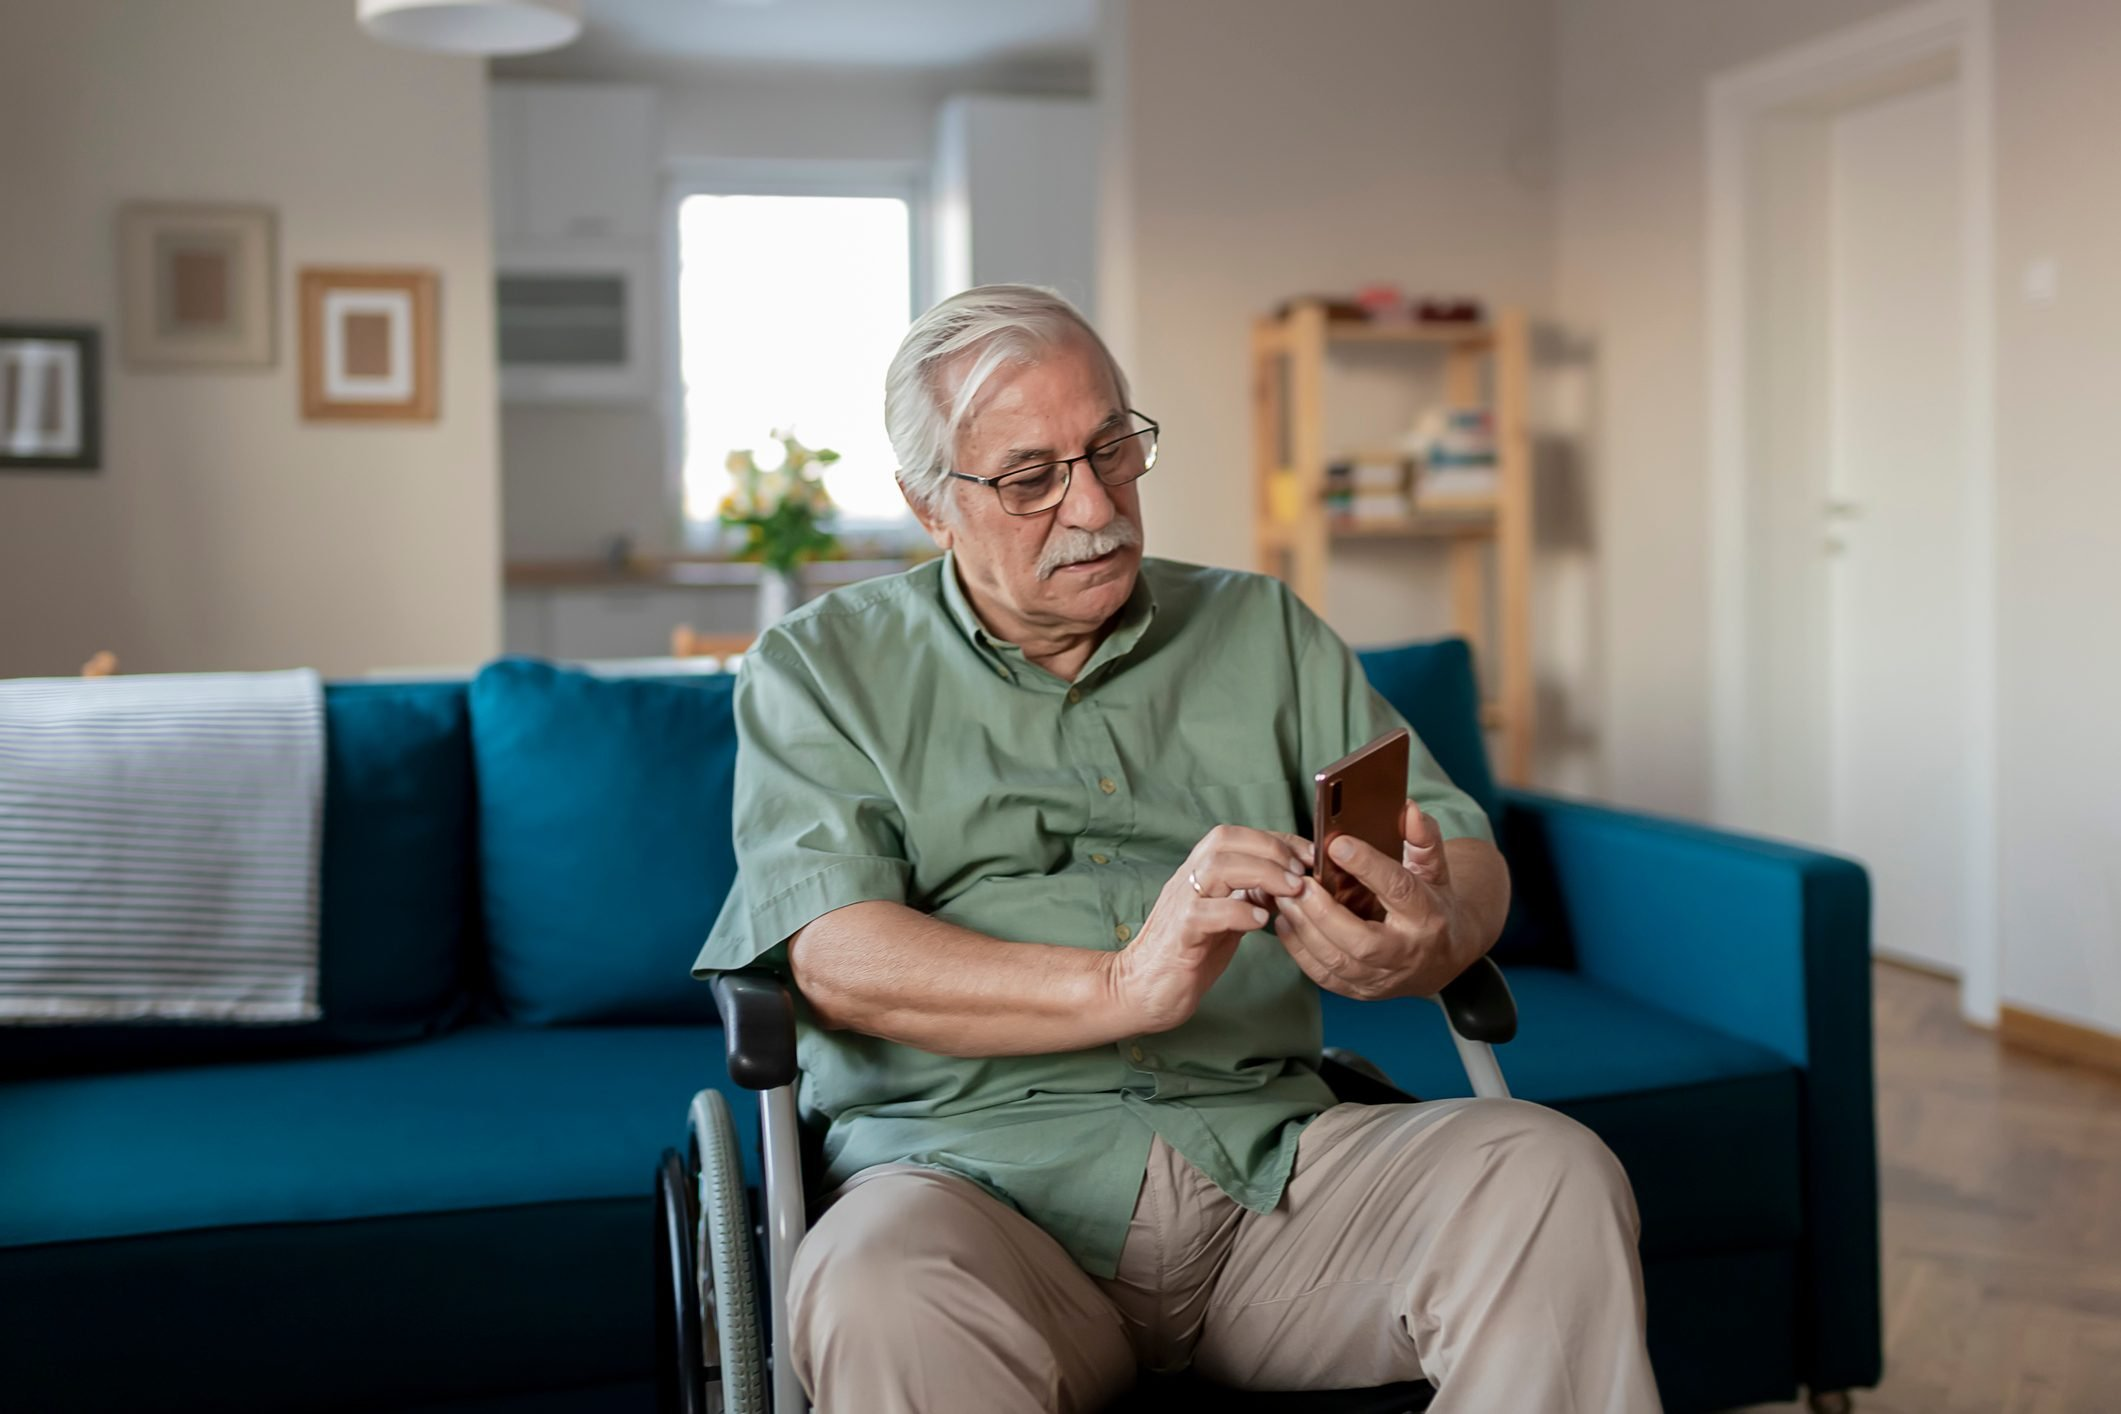 Handicapped Senior Man Sitting in a Wheelchair and Using a Smartphone